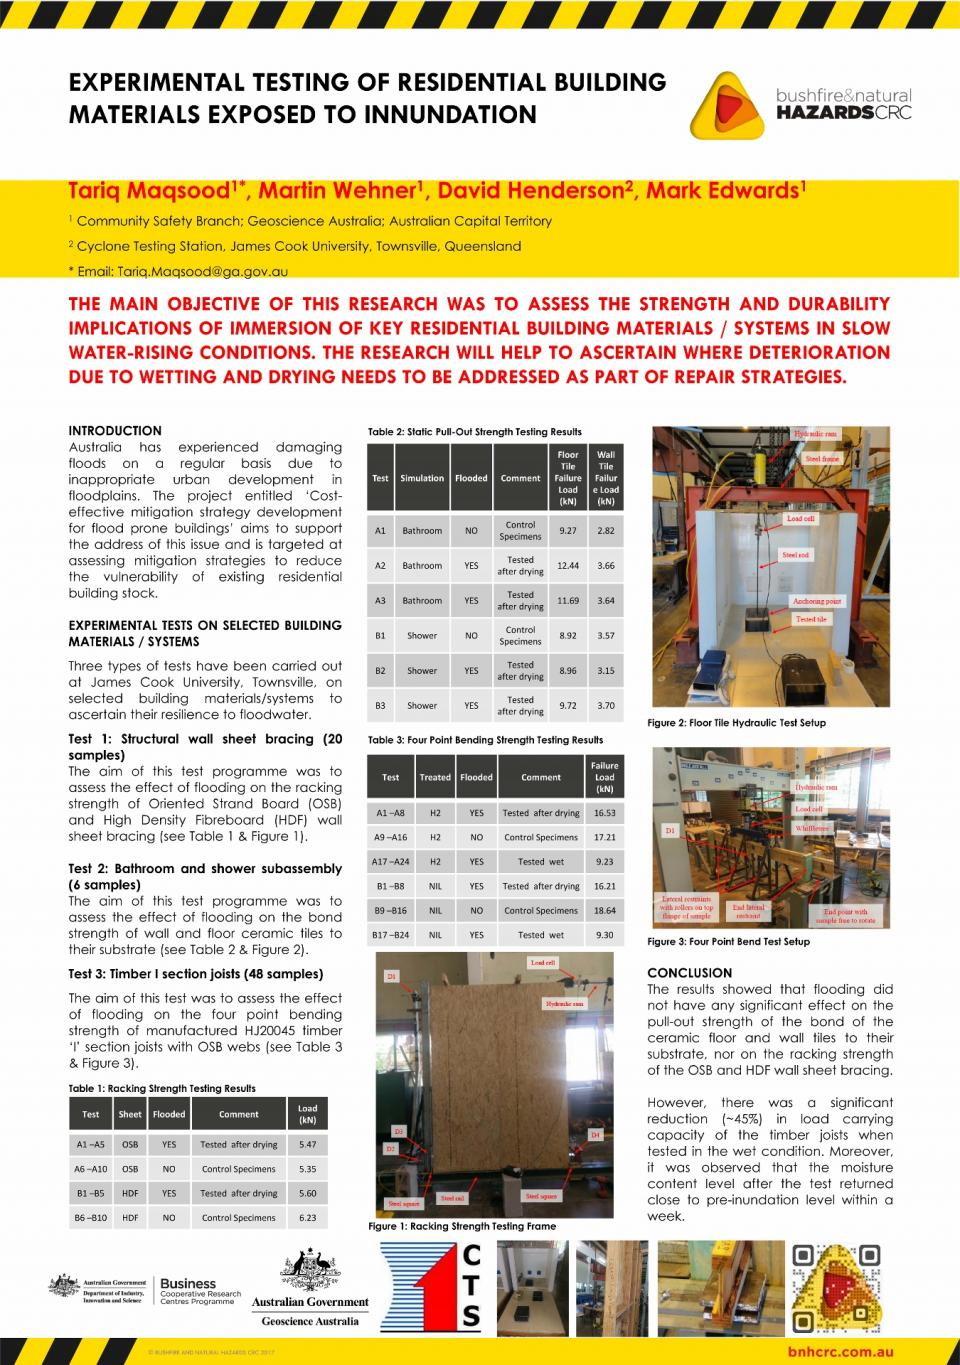 Experimental testing of residential building materials exposed to inundation